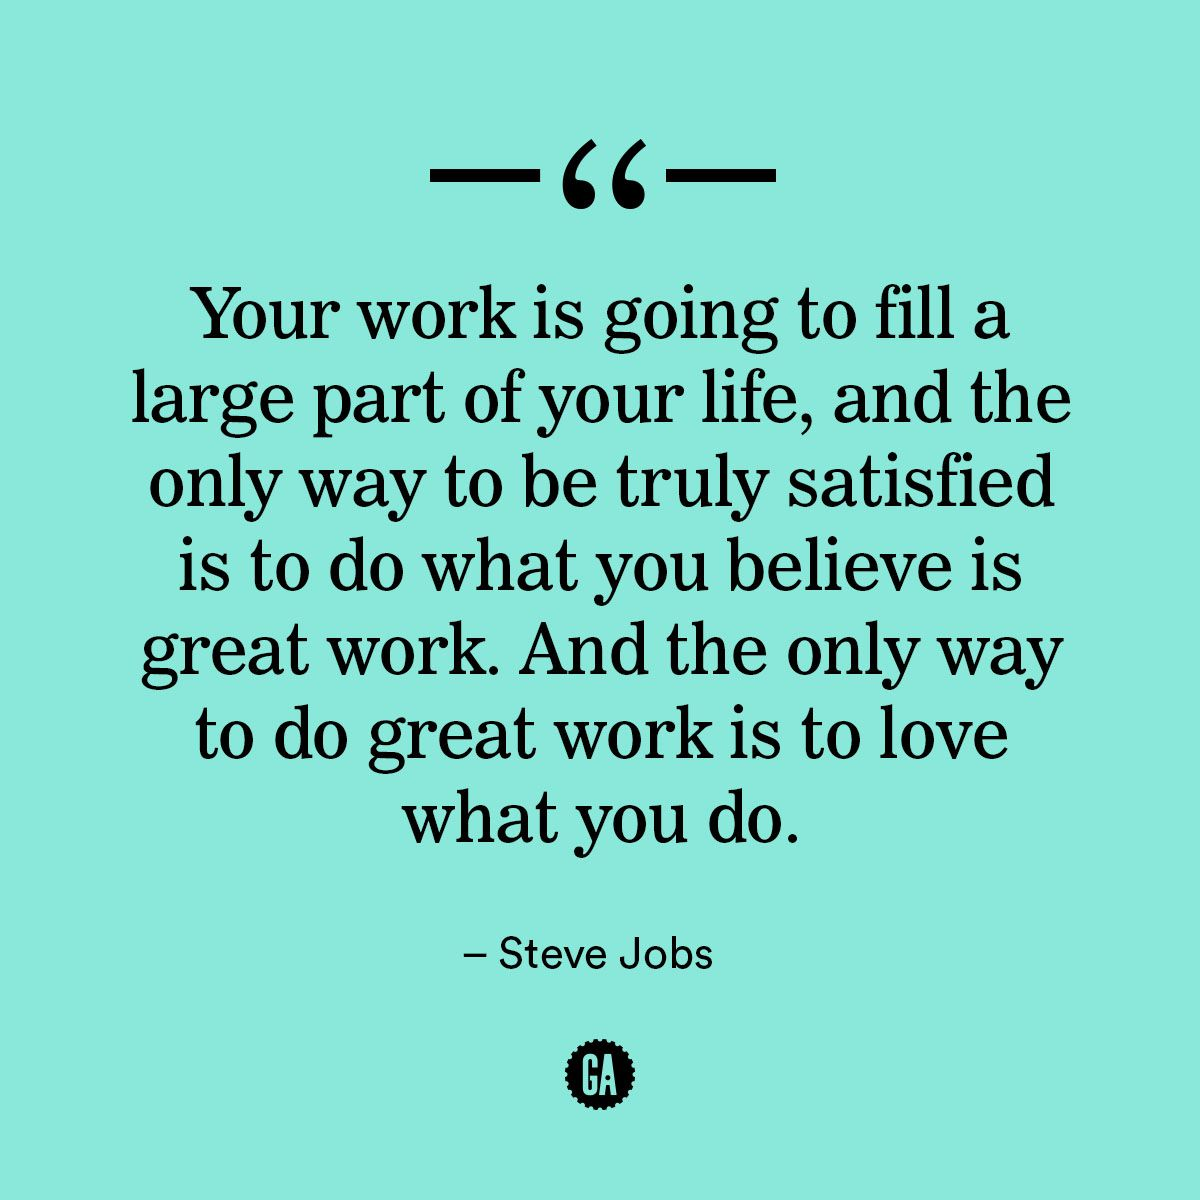 I Love My Job Quotes Love what you do. Do great work. #MondayMotivation  I Love My Job Quotes